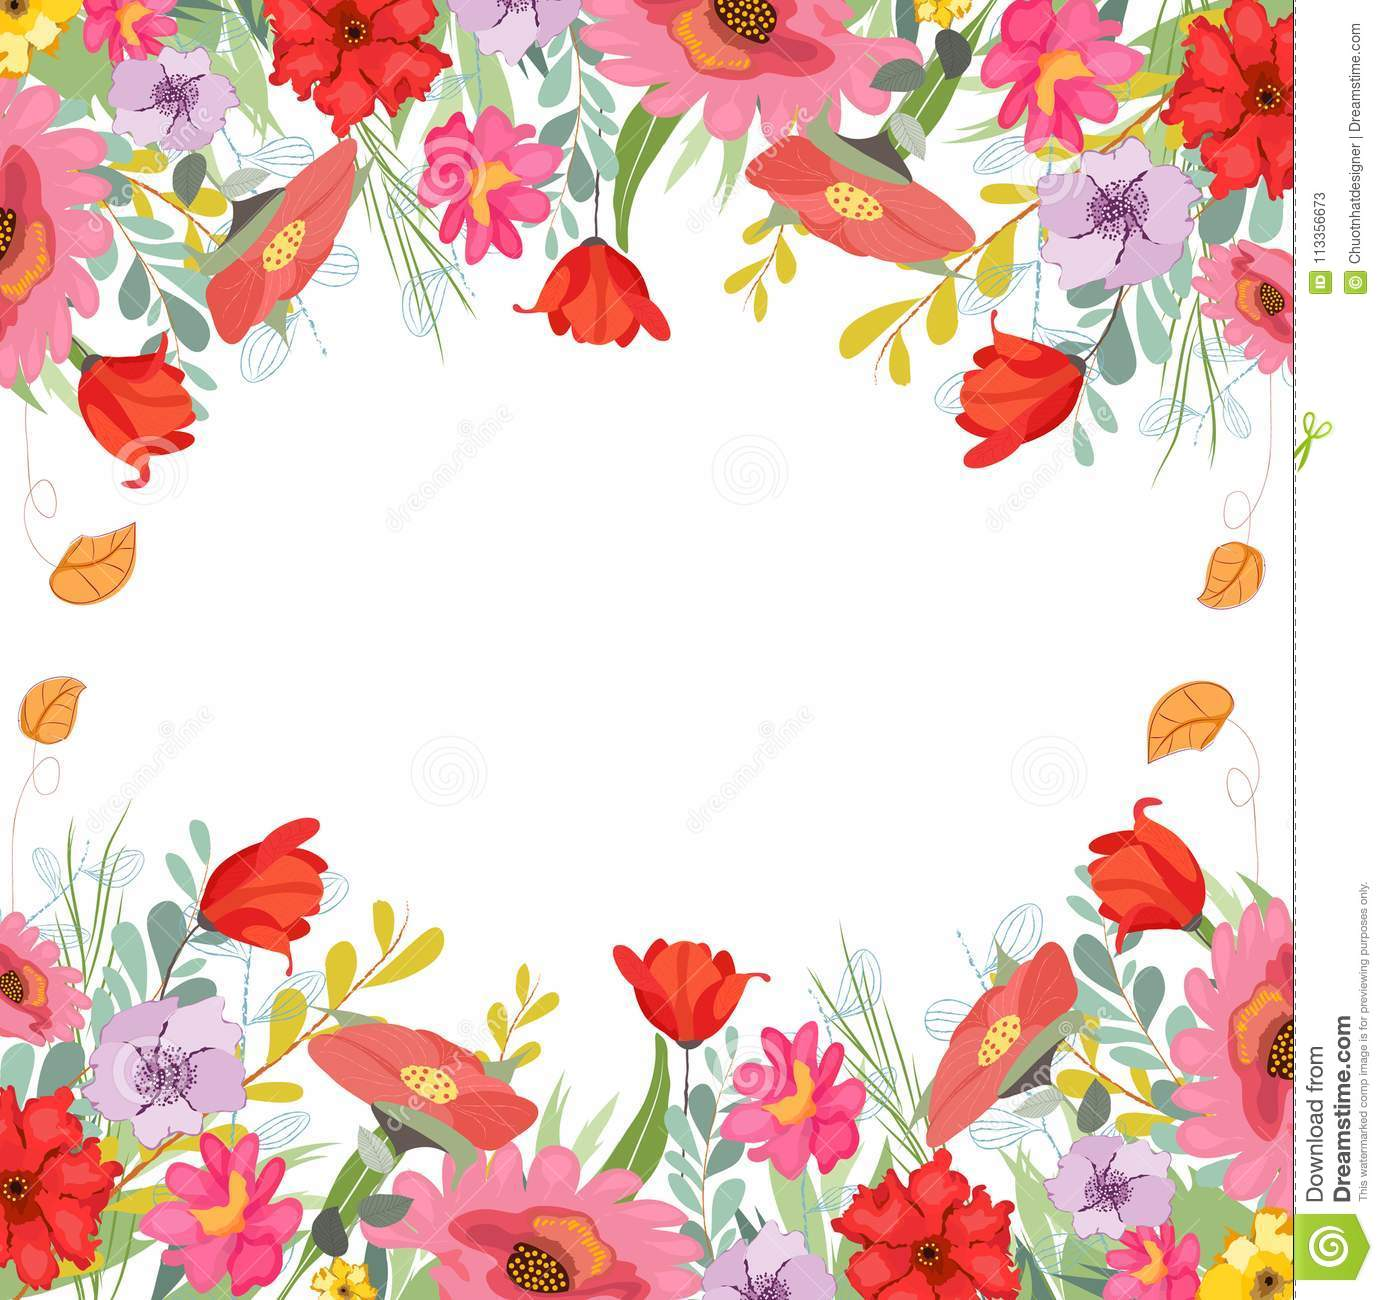 Rustic Floral Cliparts Pretty Flowers Wedding Stock